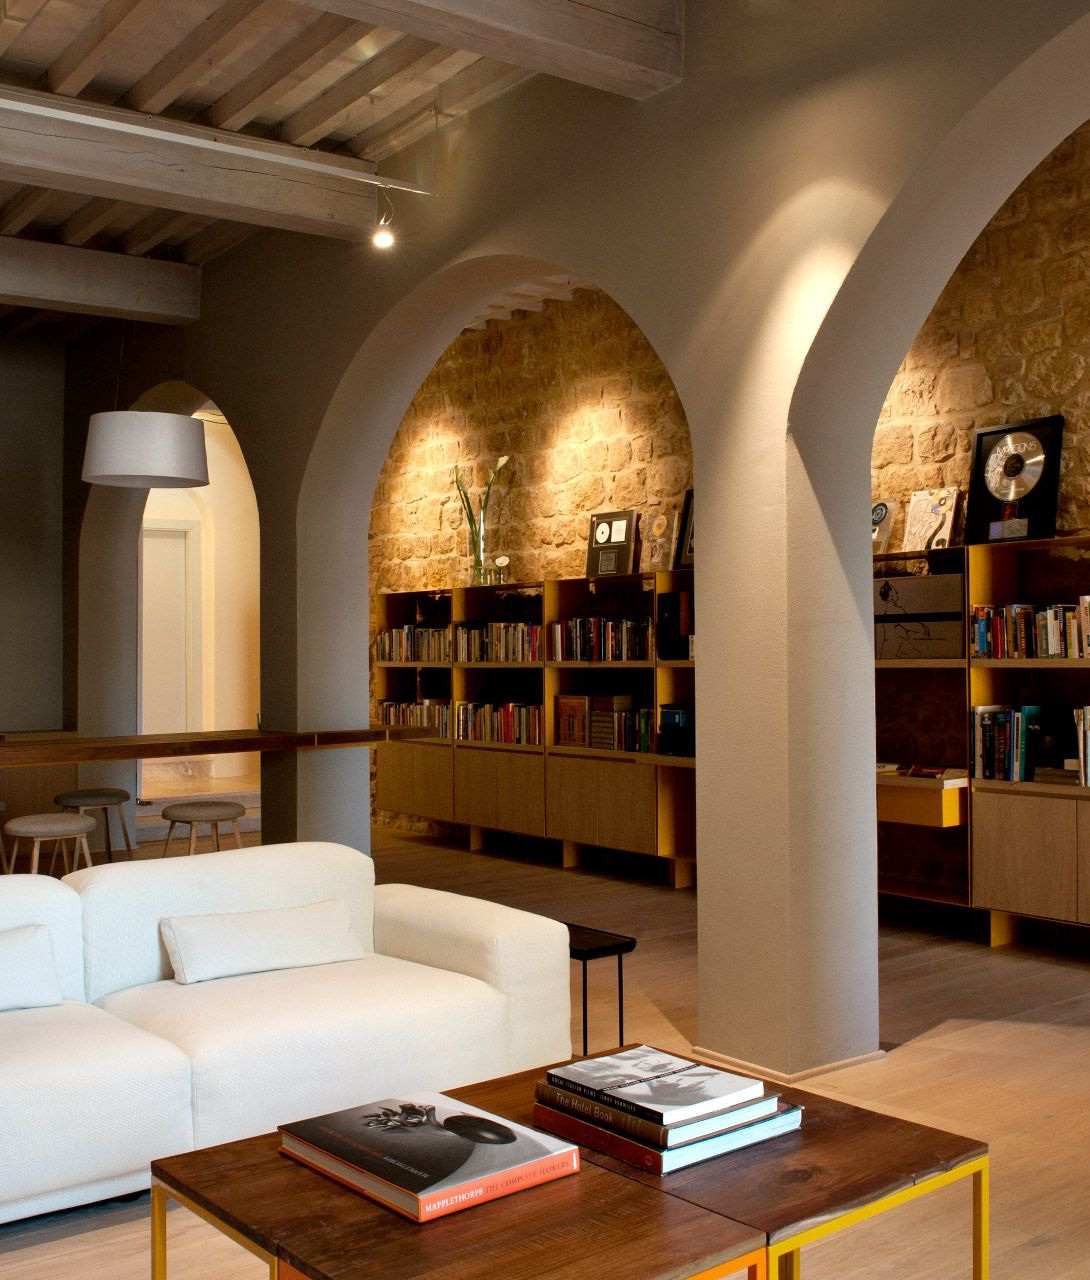 La Bandita Townhouse Lounge in Pienza